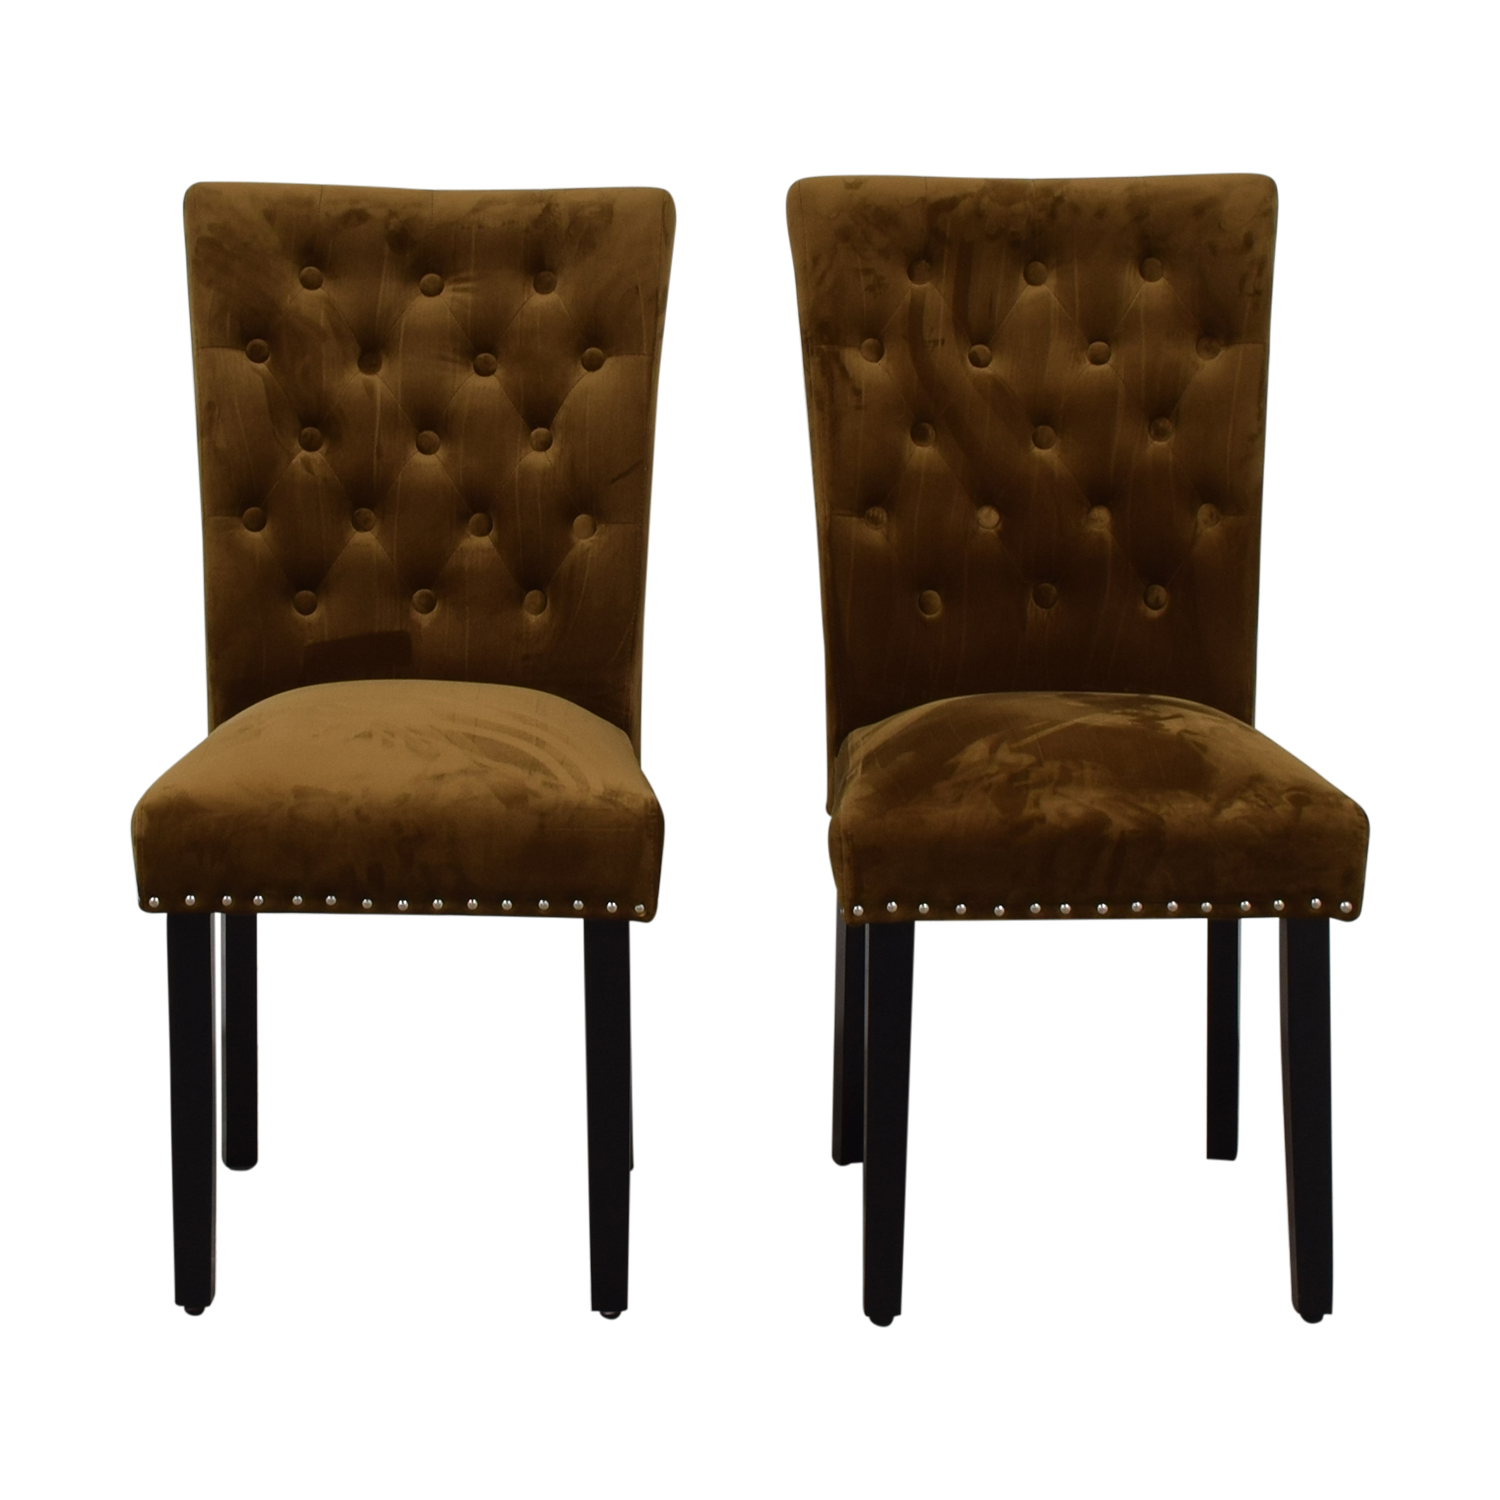 House of Hampton House of Hampton Tufted Copper Brown Dining Chairs for sale